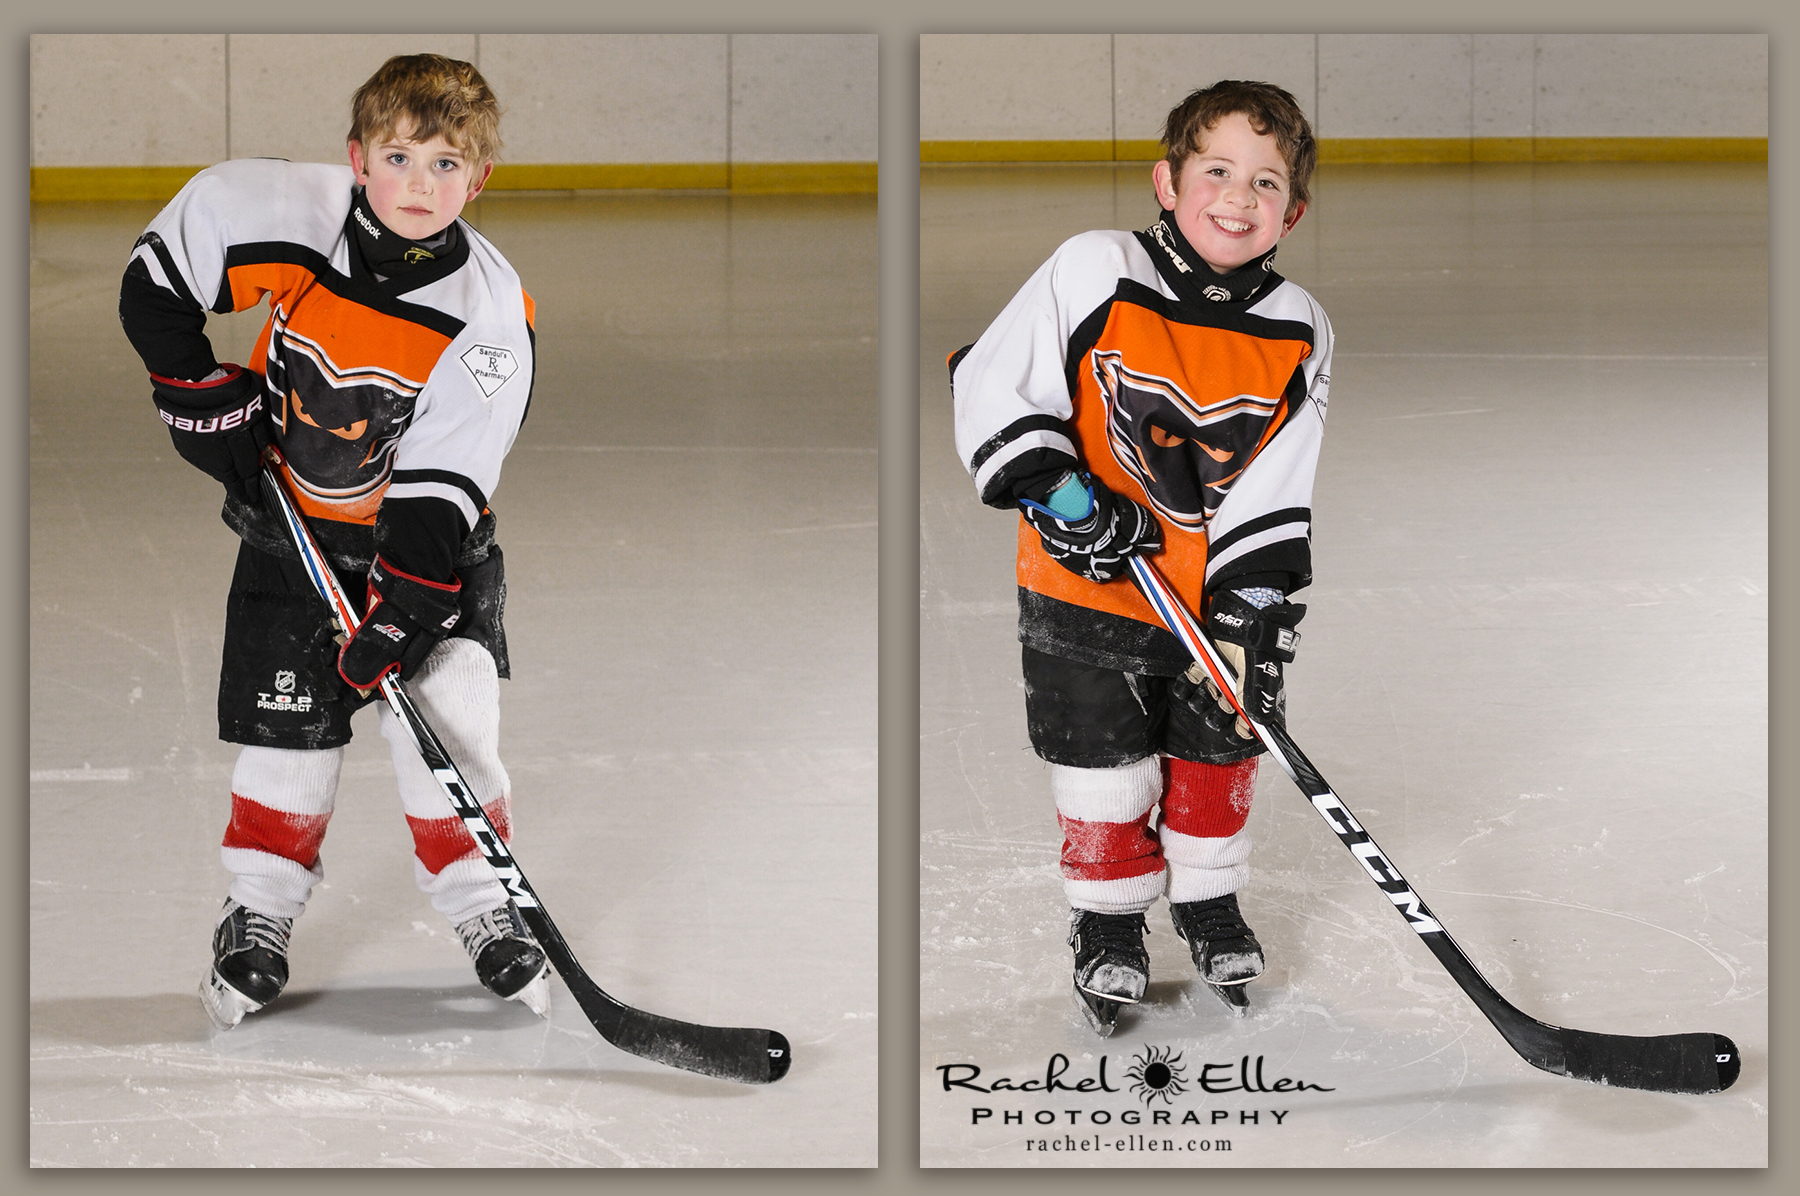 Black Diamond Hockey Photos